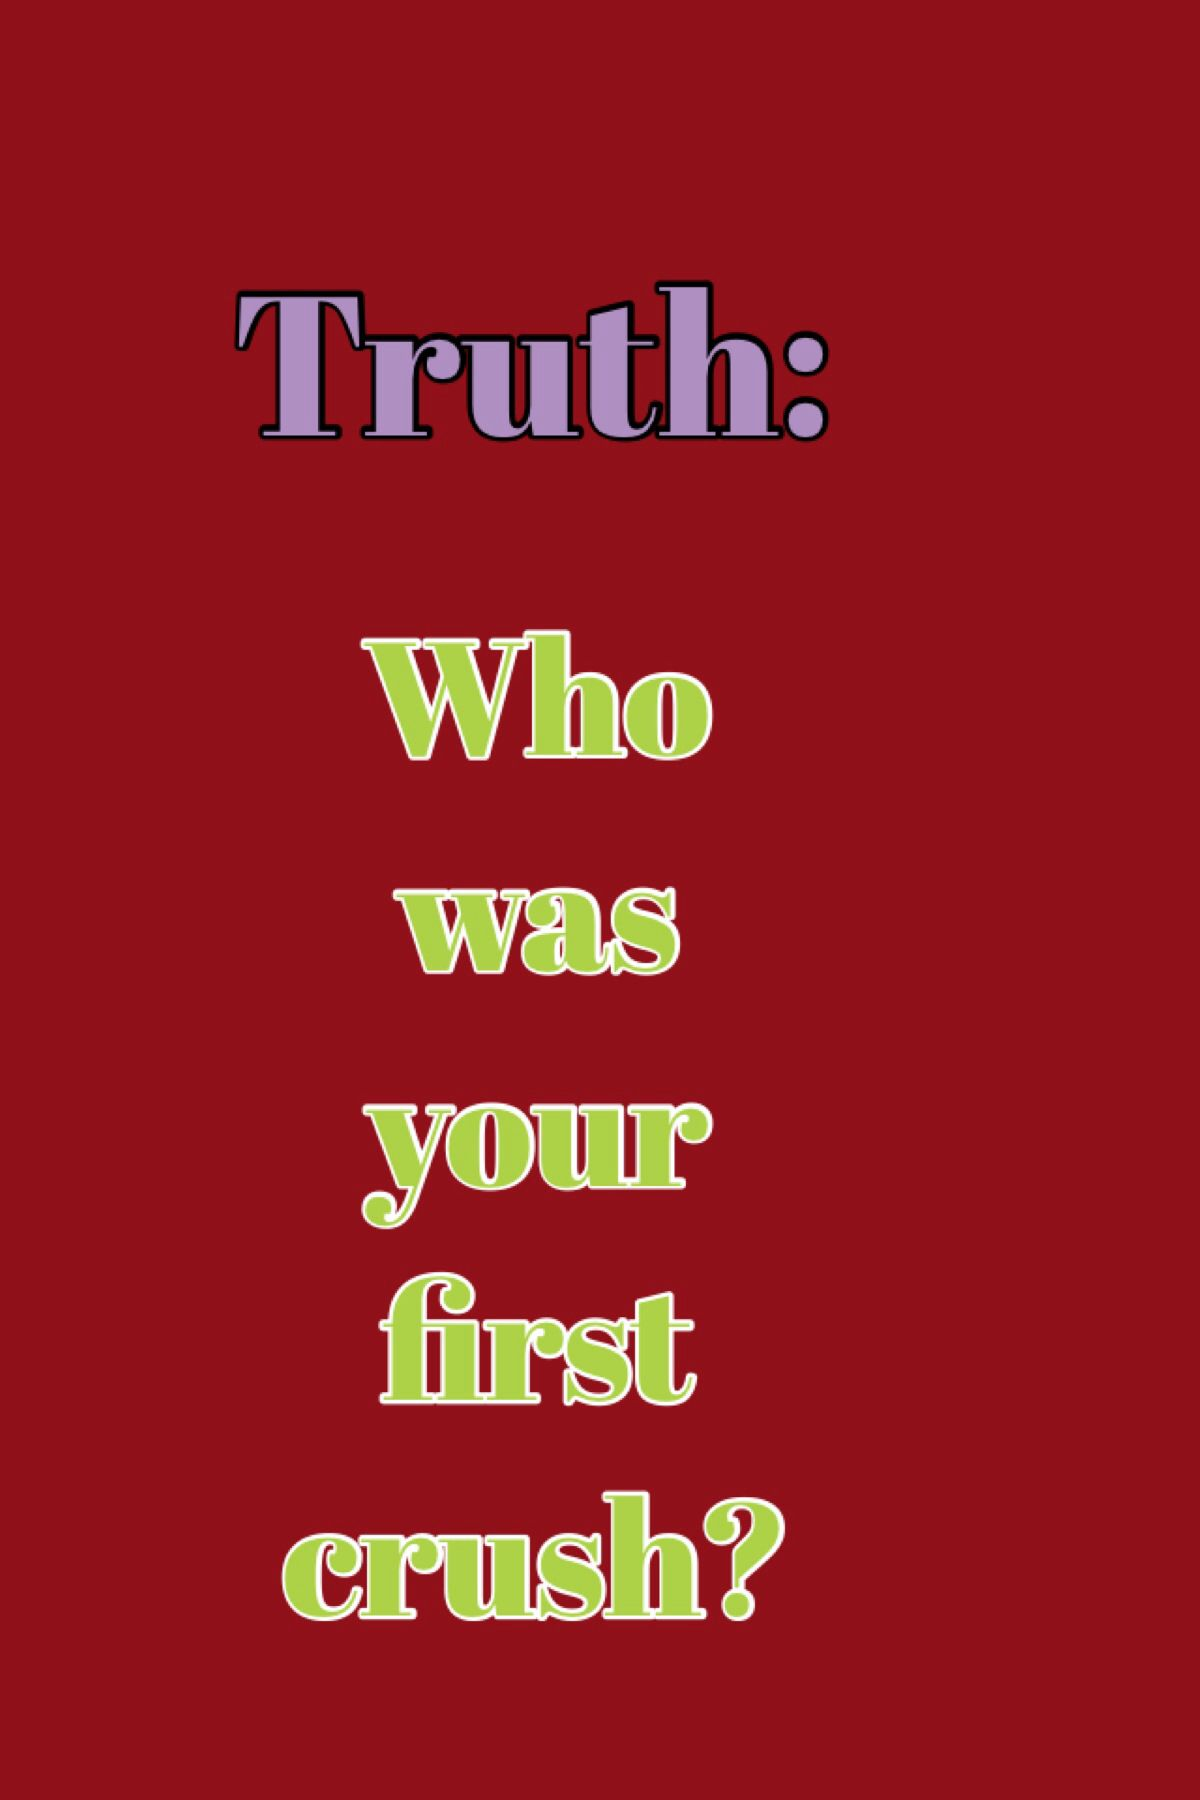 Truth for truth or dare game | Truths and dares | Truth or ...